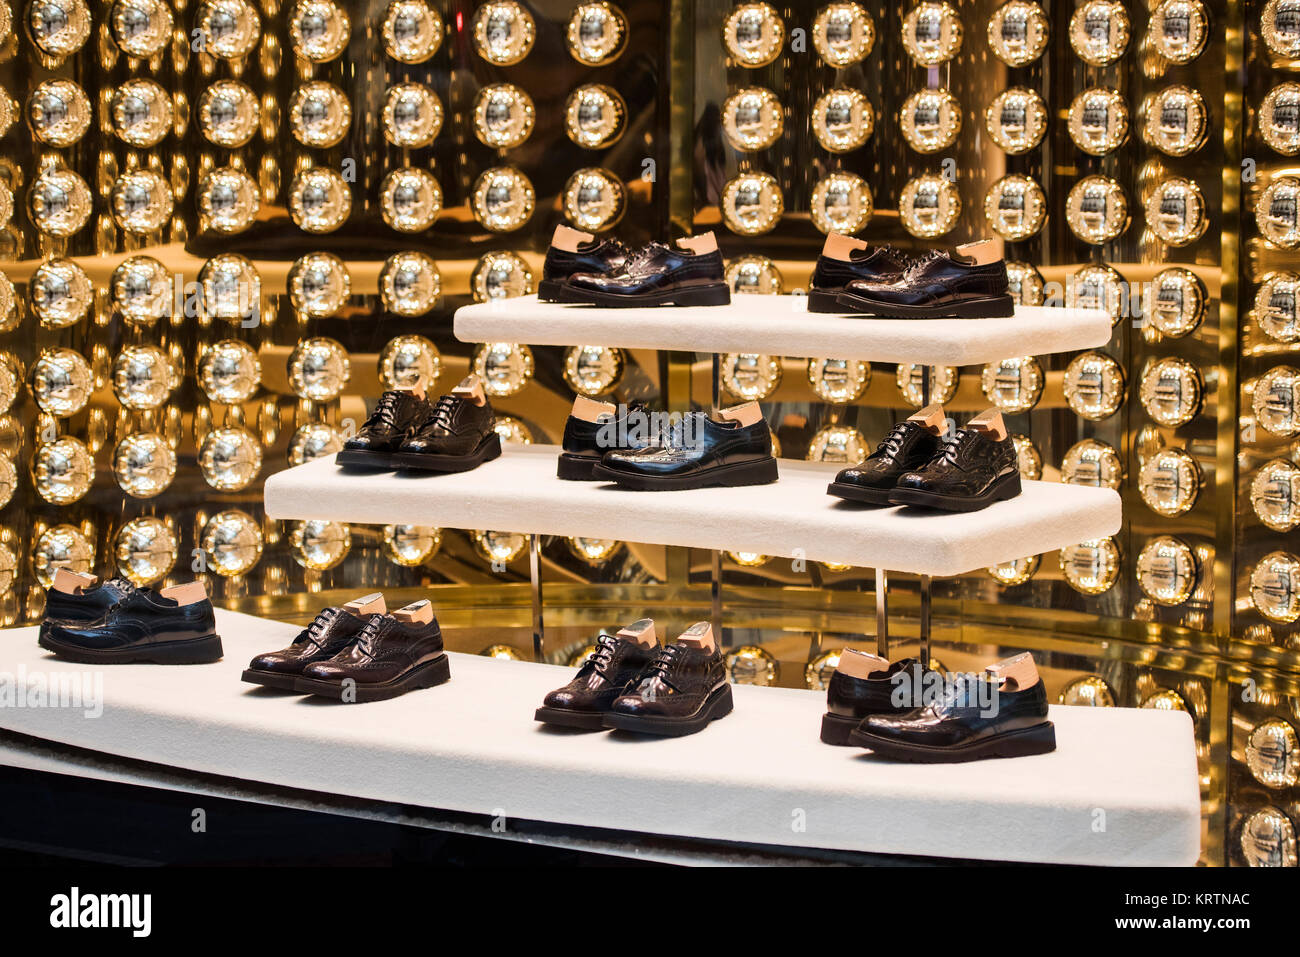 3a9e88651b6b Prada Shoes Stock Photos   Prada Shoes Stock Images - Alamy